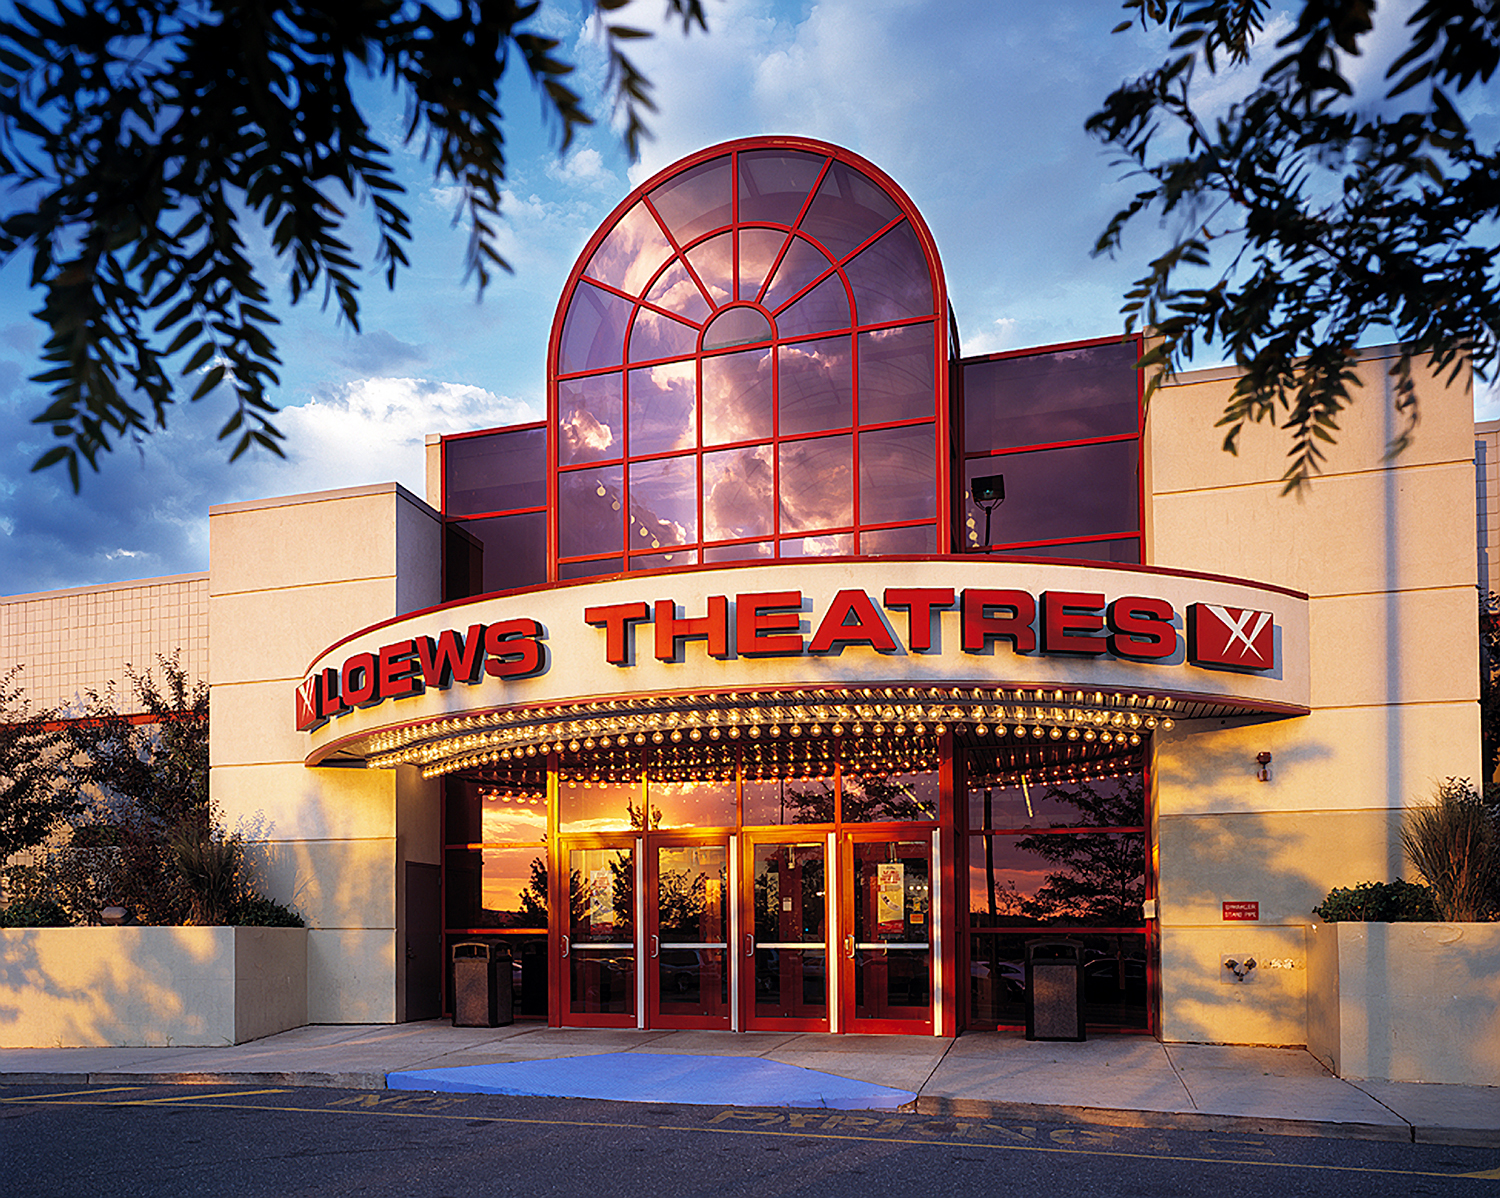 Lowes Theater flat copy copy.jpg